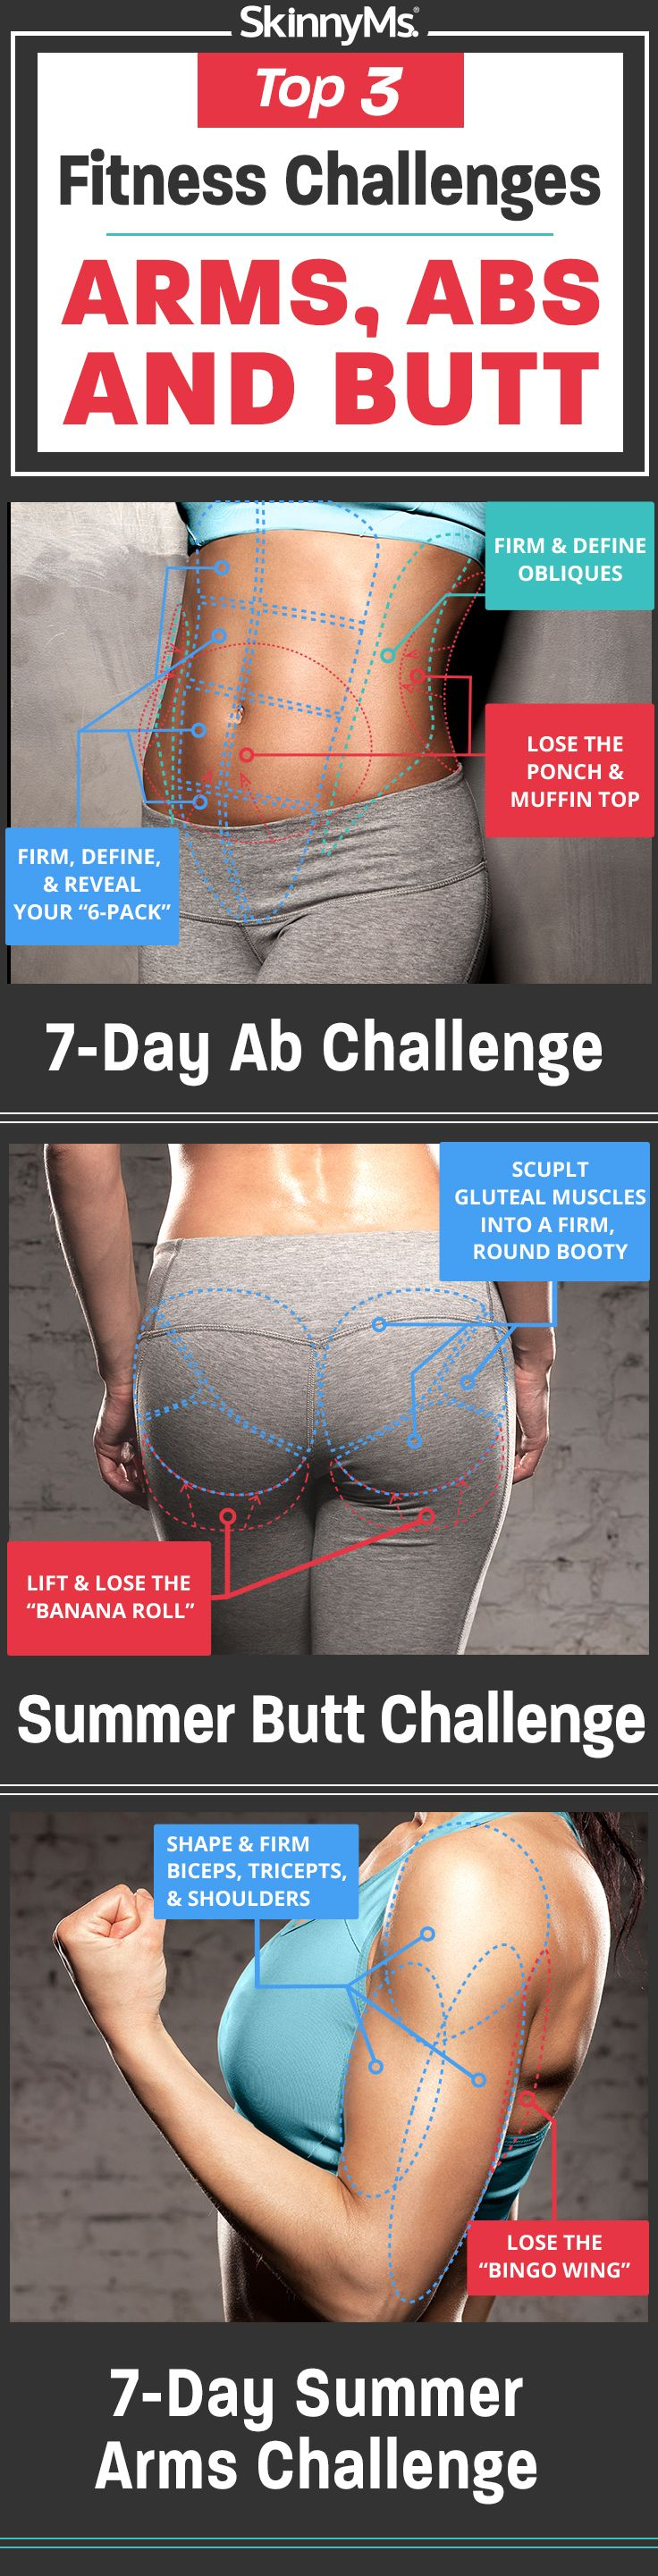 Top 3 Fitness Challenges ~ Arms, Abs, and Butt